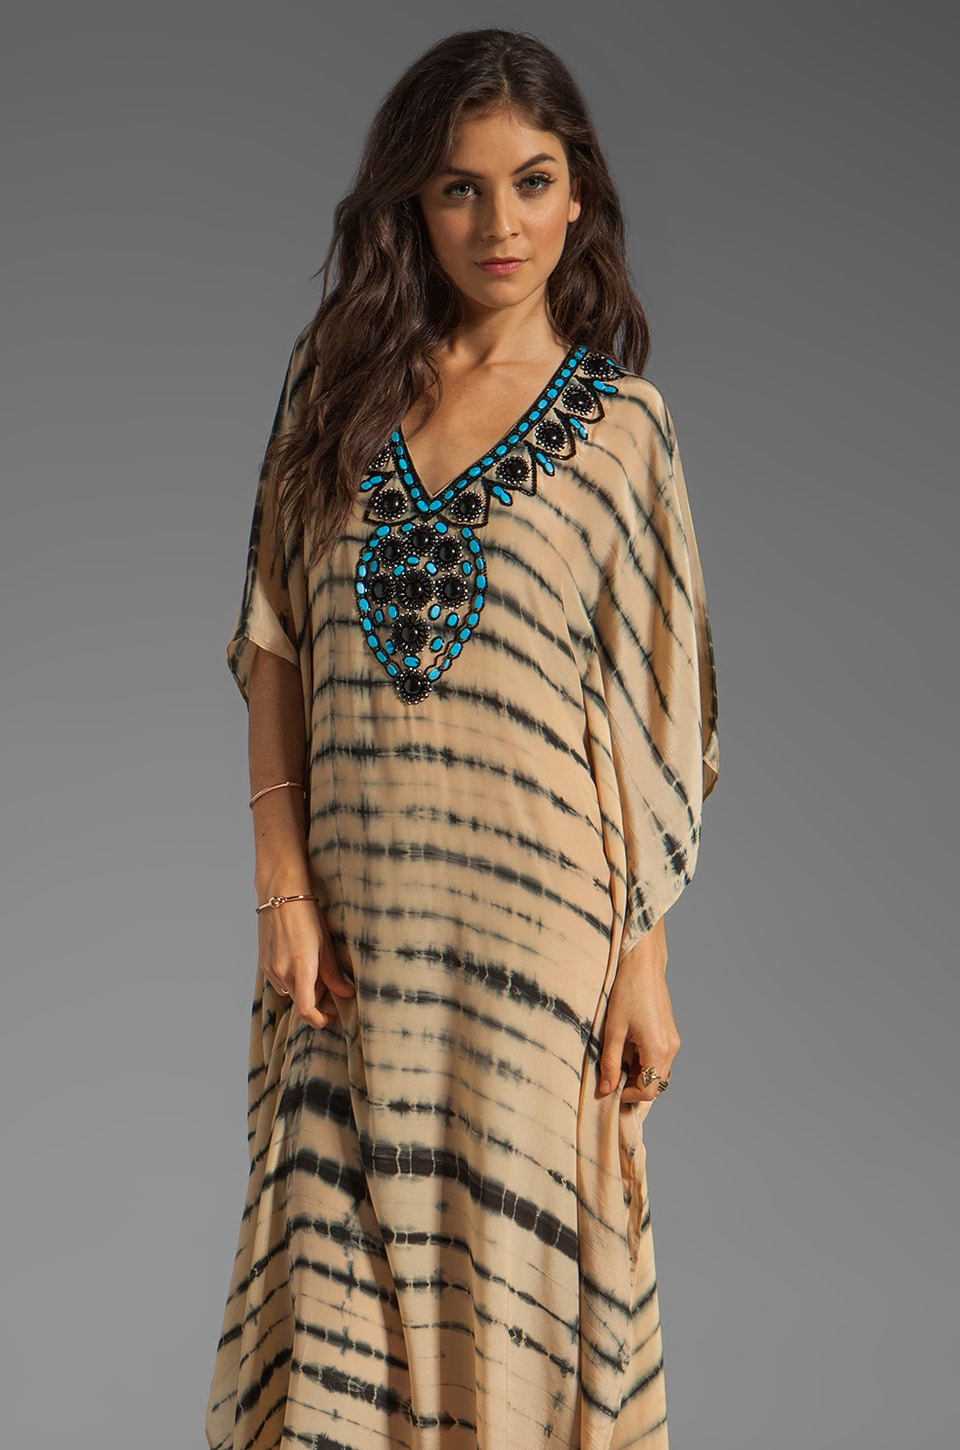 Karina Grimaldi Nassau Long Caftan Dress in Black Nude